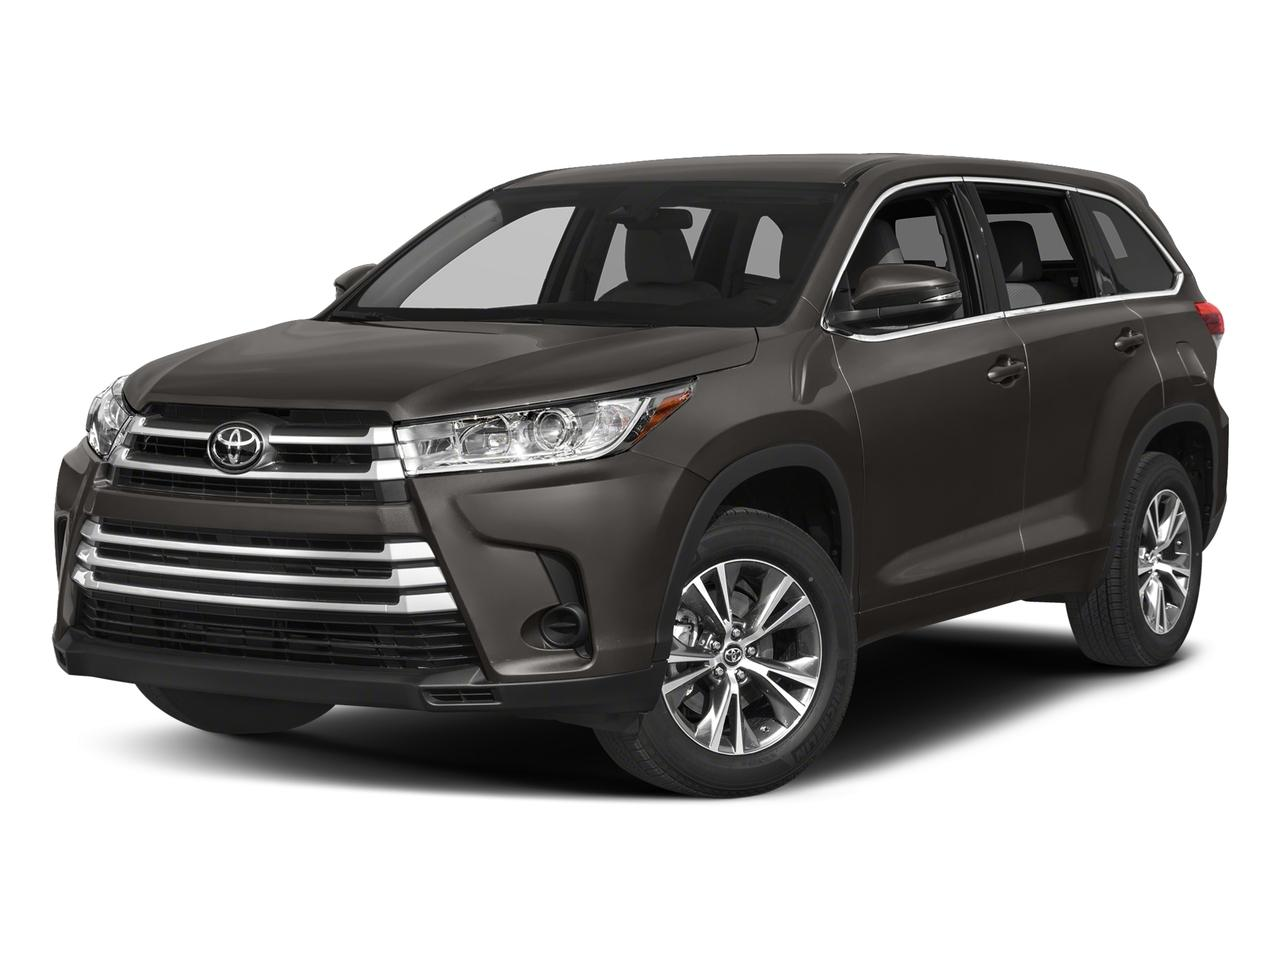 2017 Toyota Highlander Vehicle Photo in OKLAHOMA CITY, OK 73131